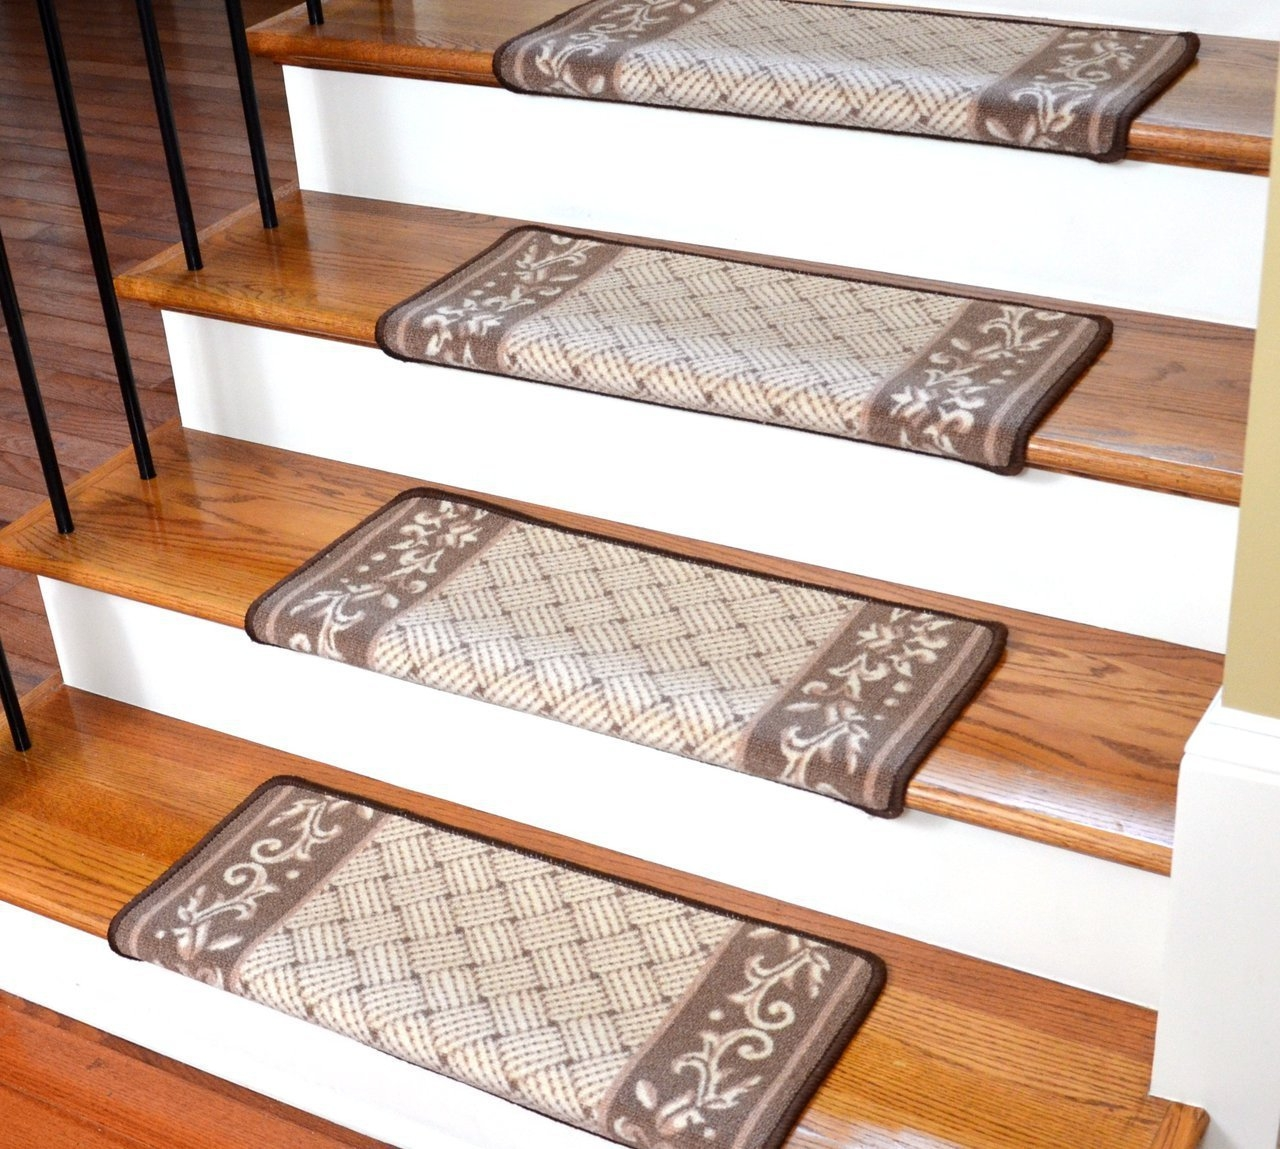 Red Carpet Stair Treads Lowes Nice Carpet Stair Treads Lowes Within Stair Tread Rug Holders (View 16 of 20)